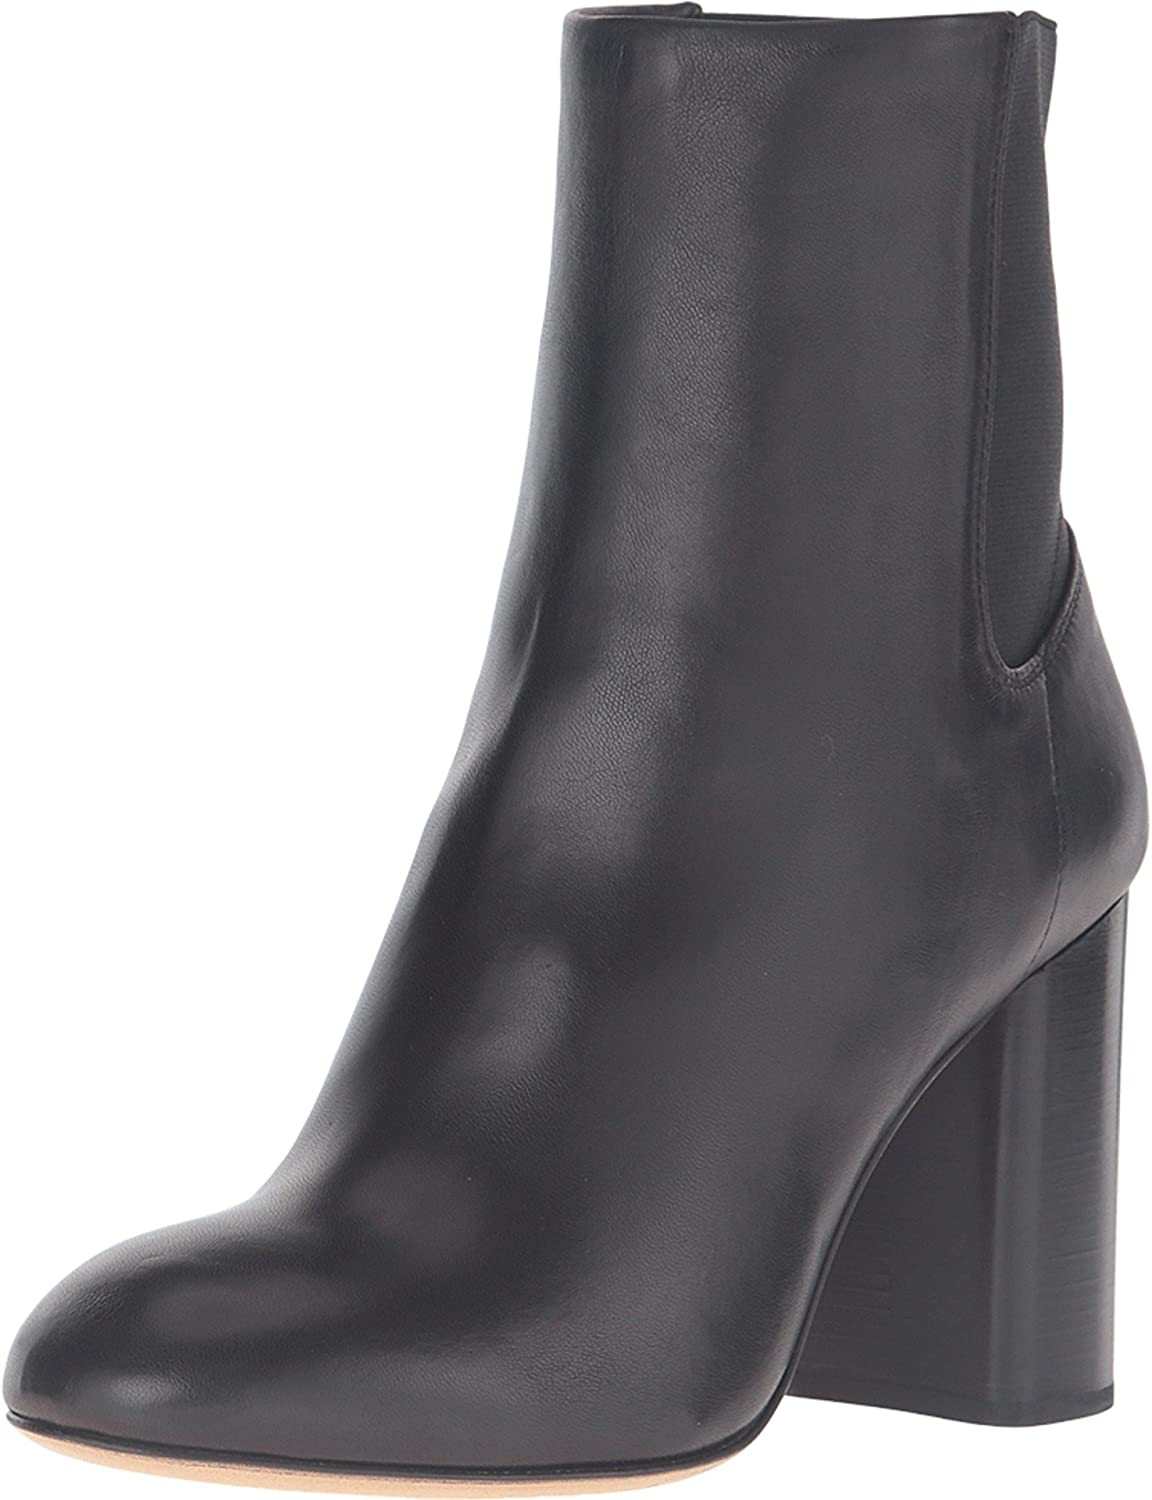 Rag & Bone Womens Agnes Leather Ankle Booties